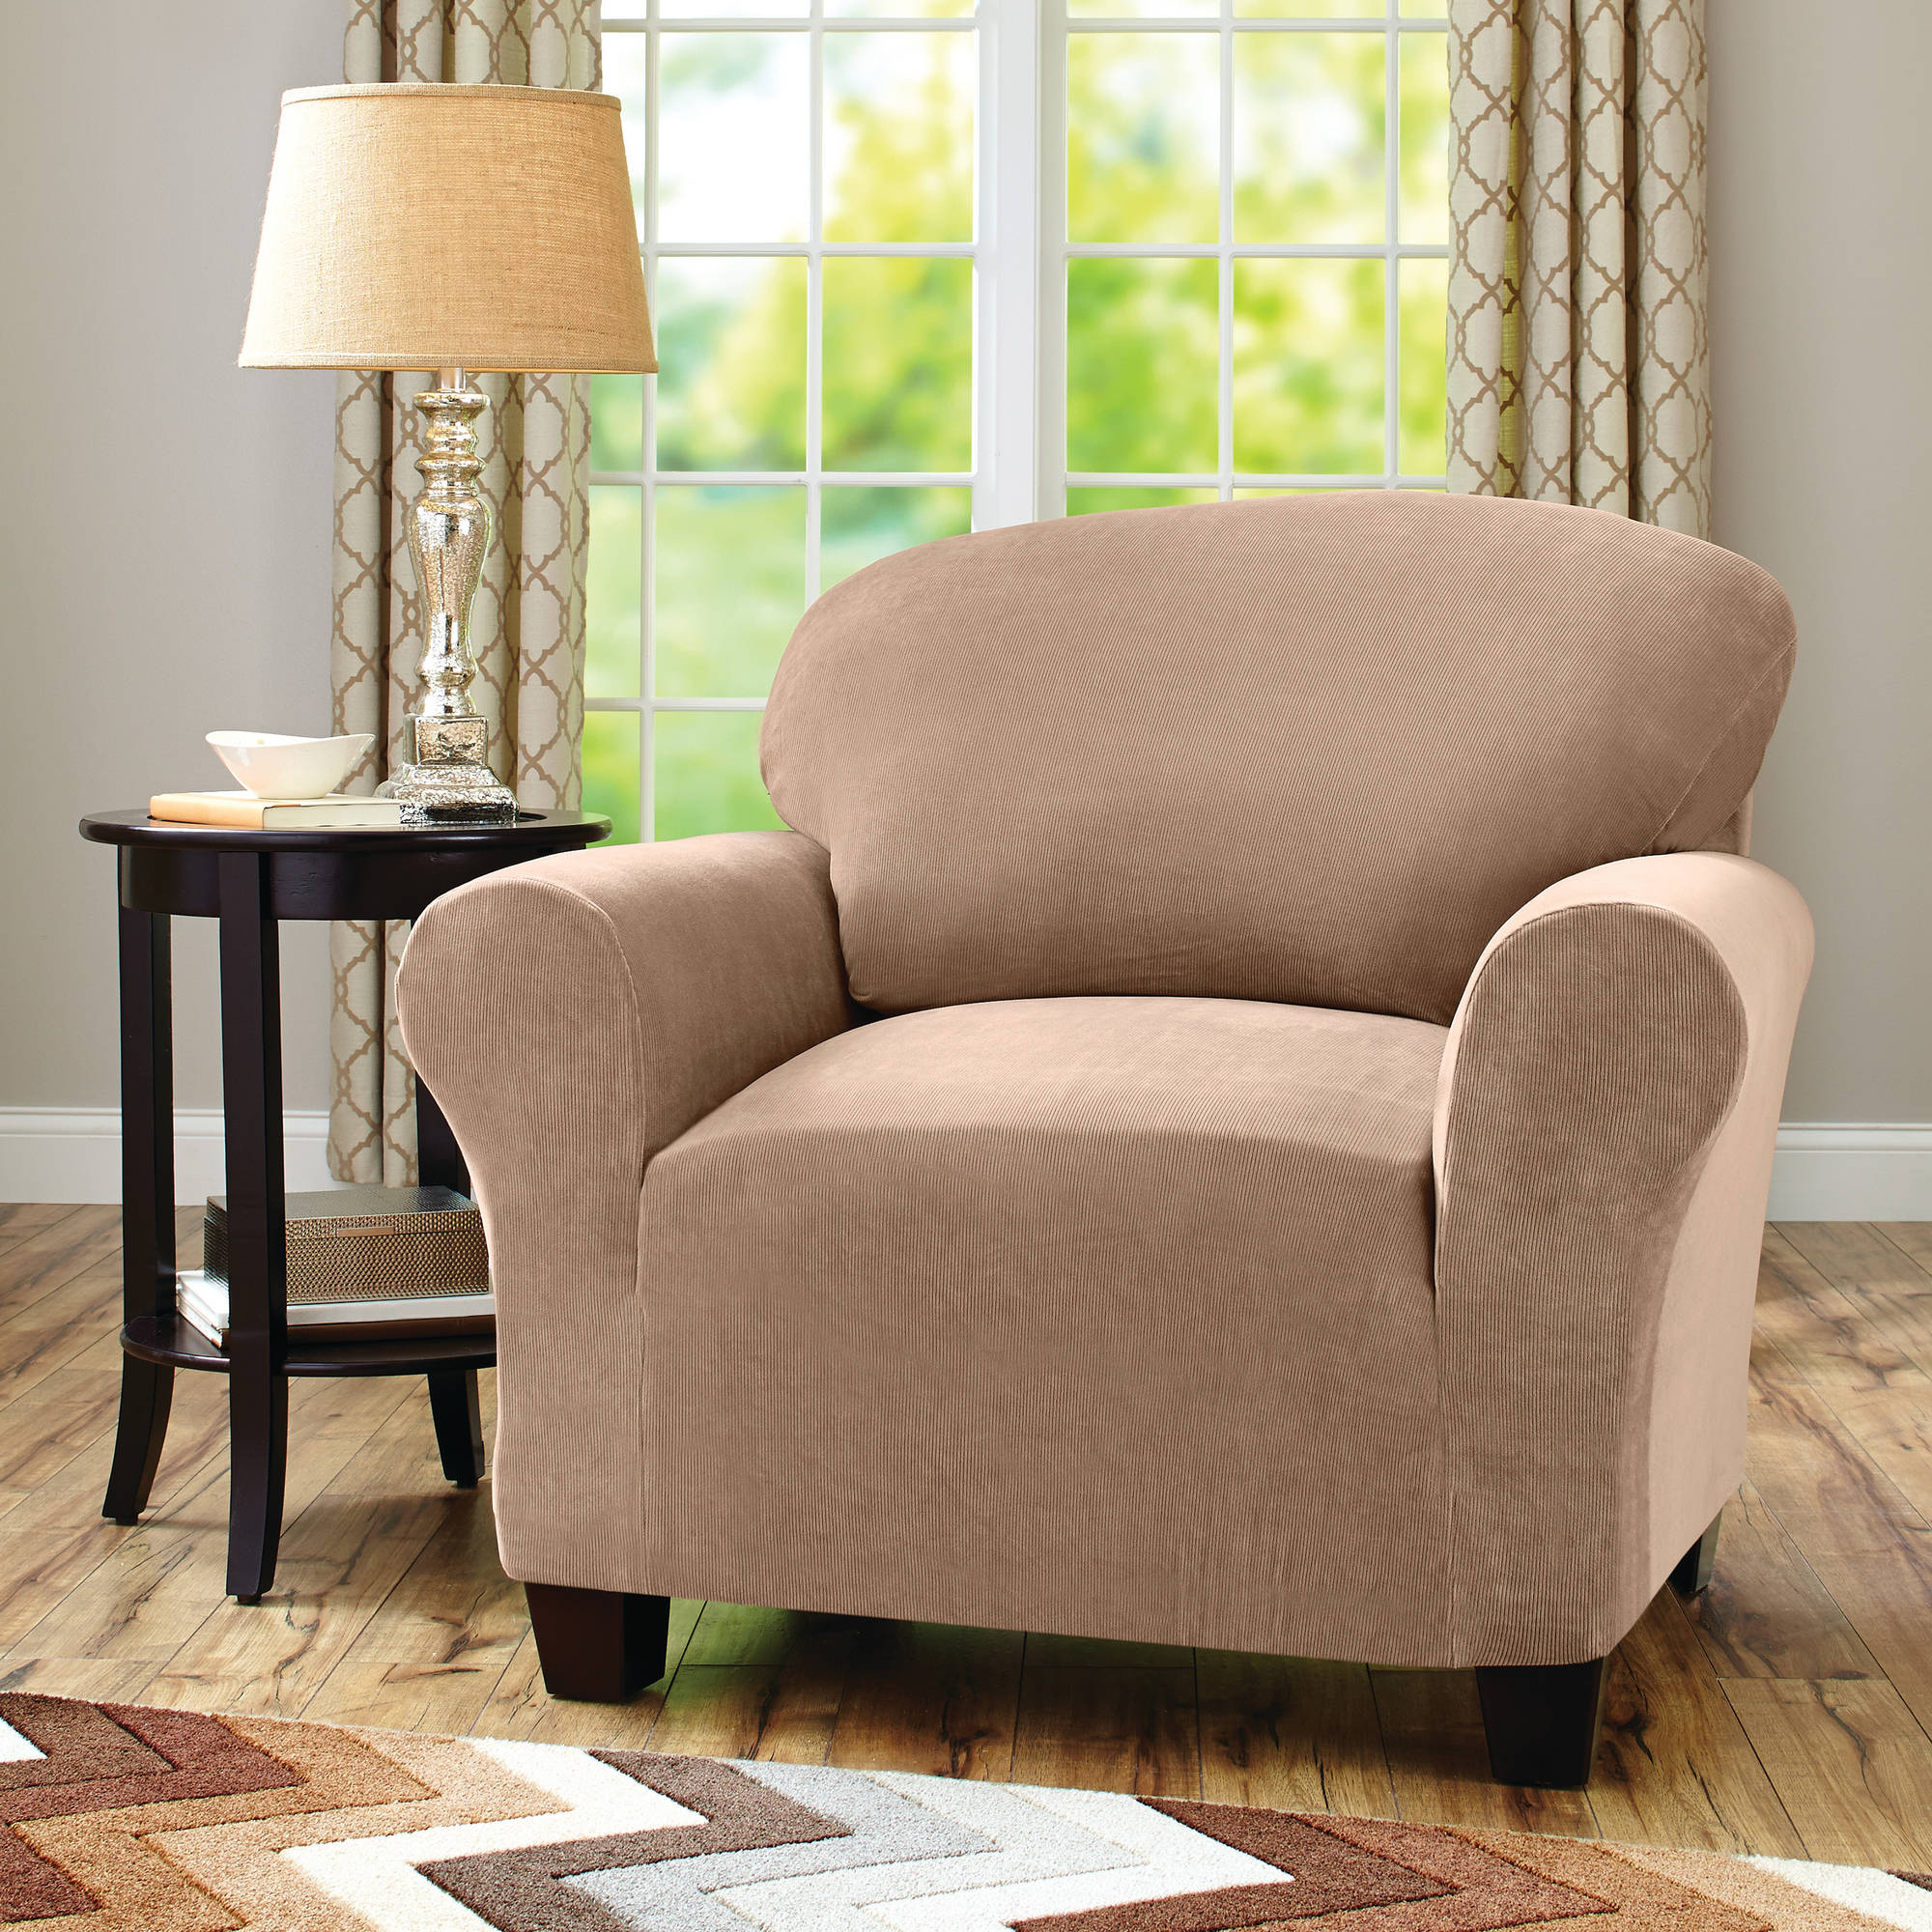 Better Homes And Gardens One Piece Stretch Fine Corduroy Chair In Well Known Sofa And Chair Slipcovers (Gallery 11 of 20)